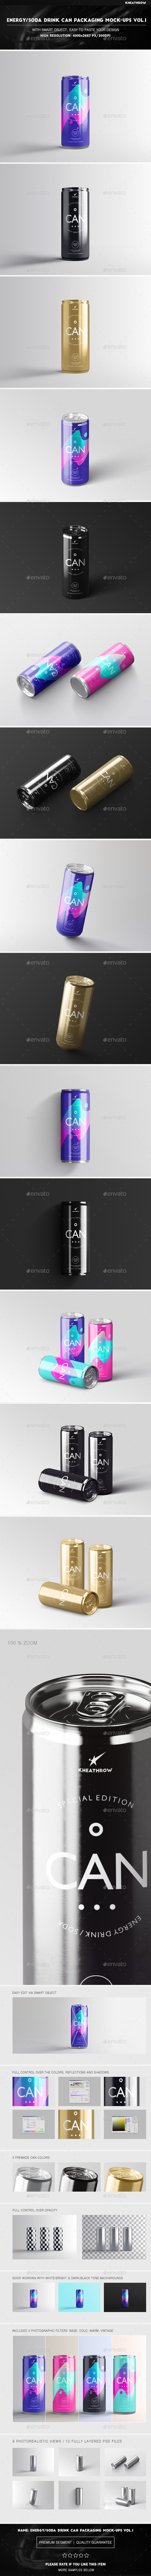 Energy / Soda Drink Can Packaging Mock-Ups Vol.1 - Product Mock-Ups Graphics